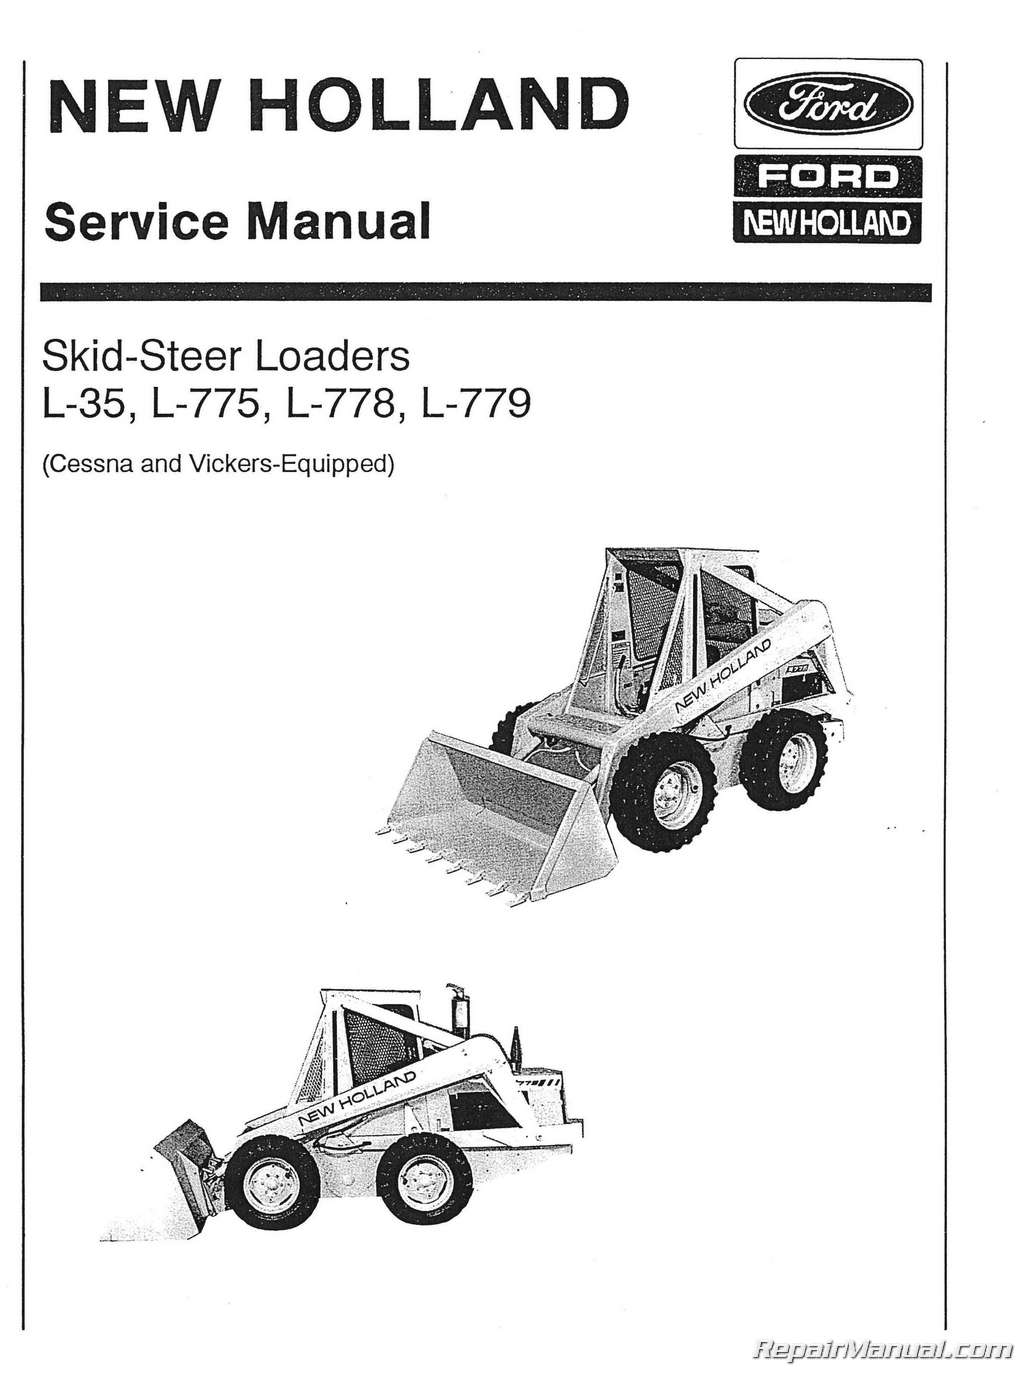 Ford New Holland L35 L775 L778 L779 Skid Steer Service Manual 8n Steering